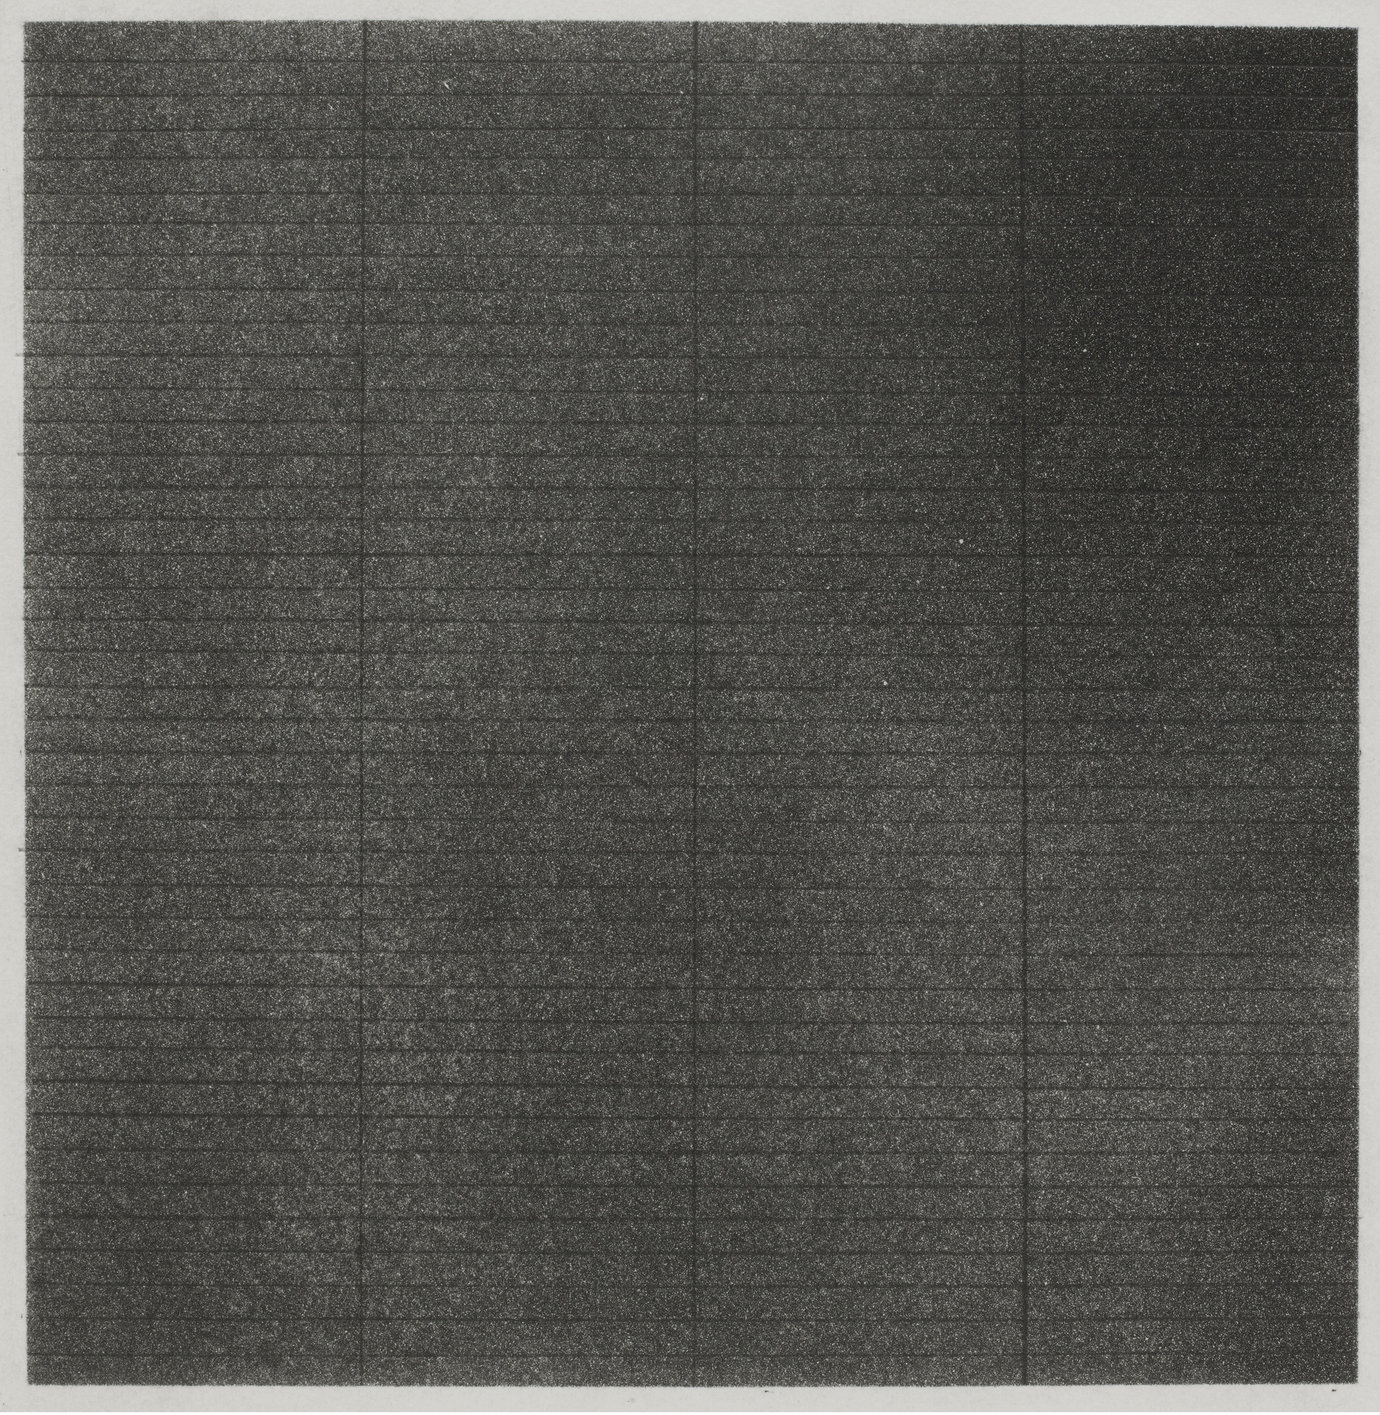 ", 1962. graphite on aquatint proof, 12-1/2 x 12-3/4"" (31.8 x 32.4 cm)."